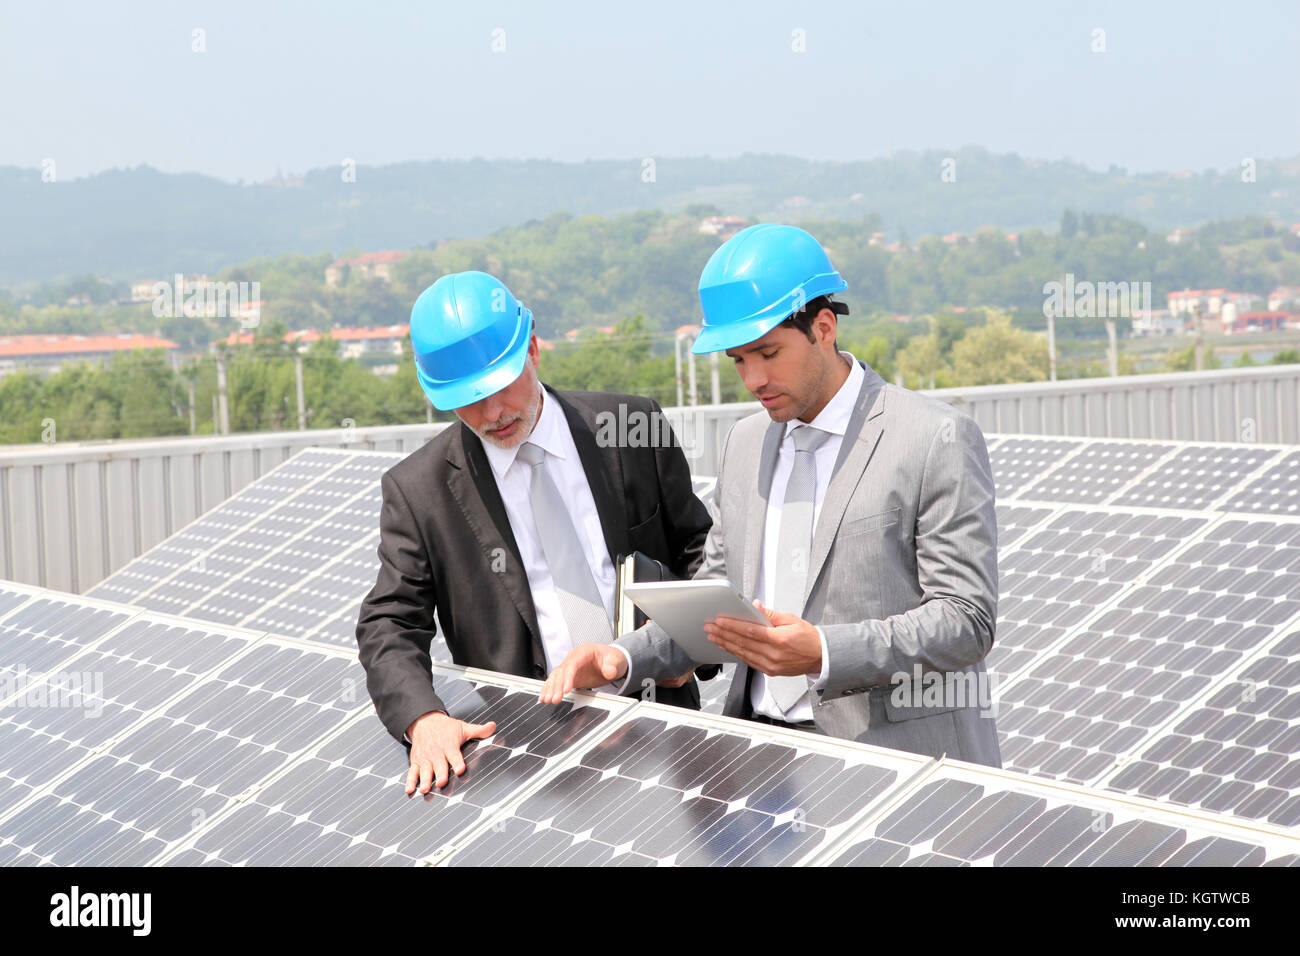 Engineers checking solar panels setup - Stock Image